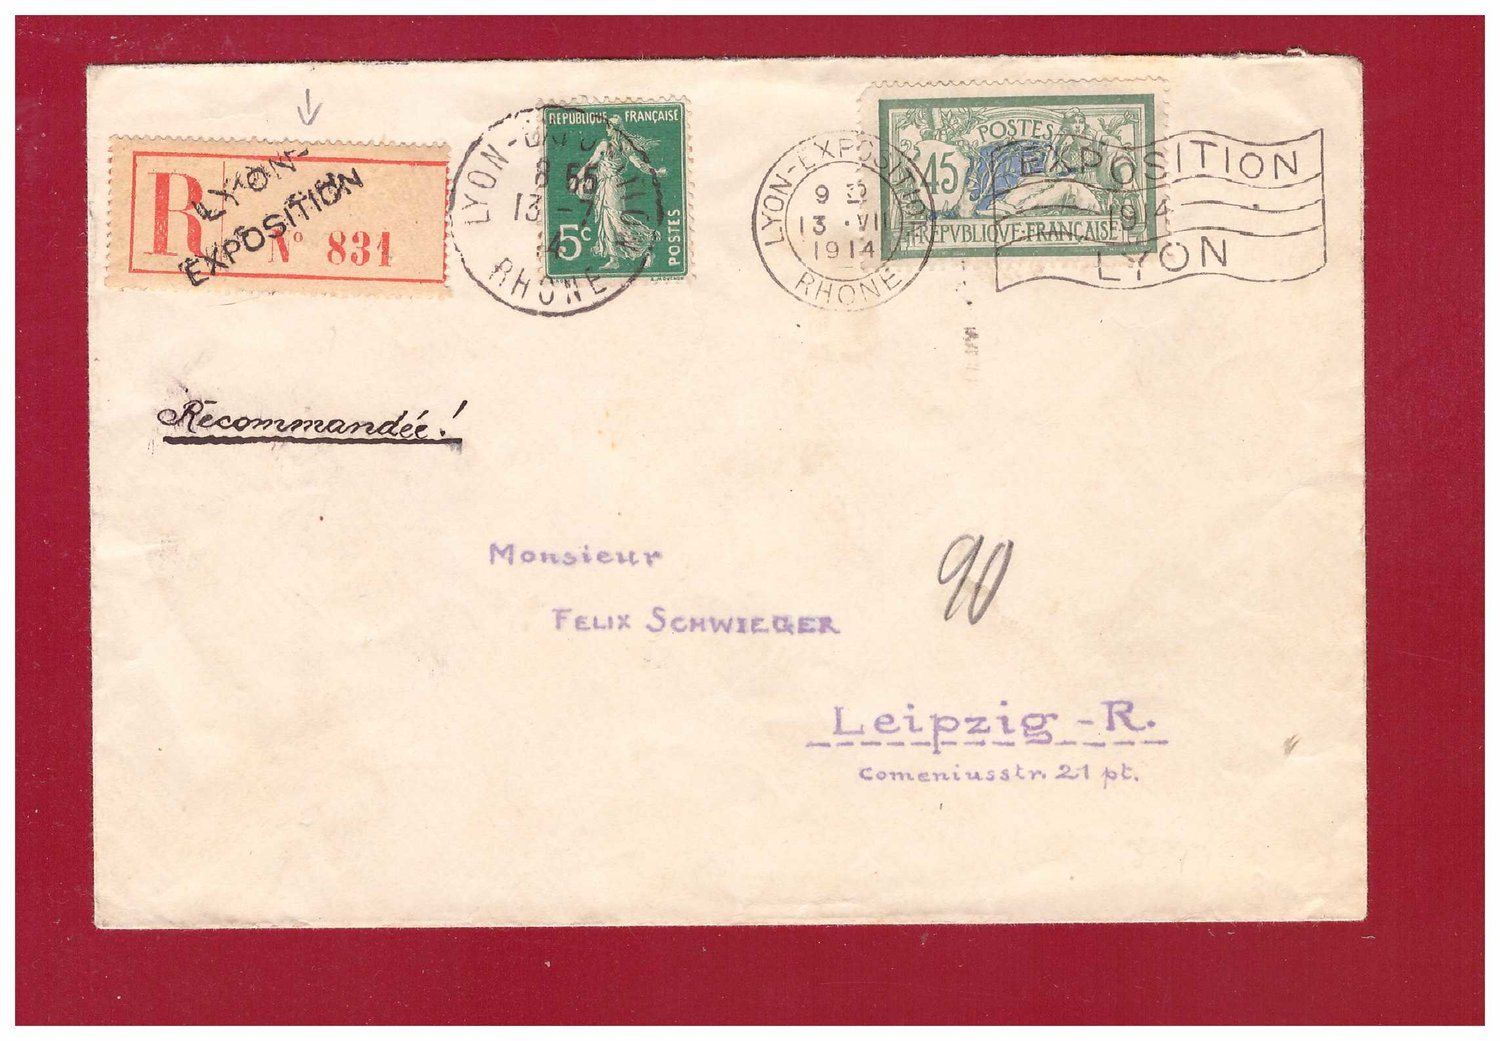 FRANCE. REG REG REG cover to Germany. LYON EXPOSITION 13 VII 1914. 1092ff